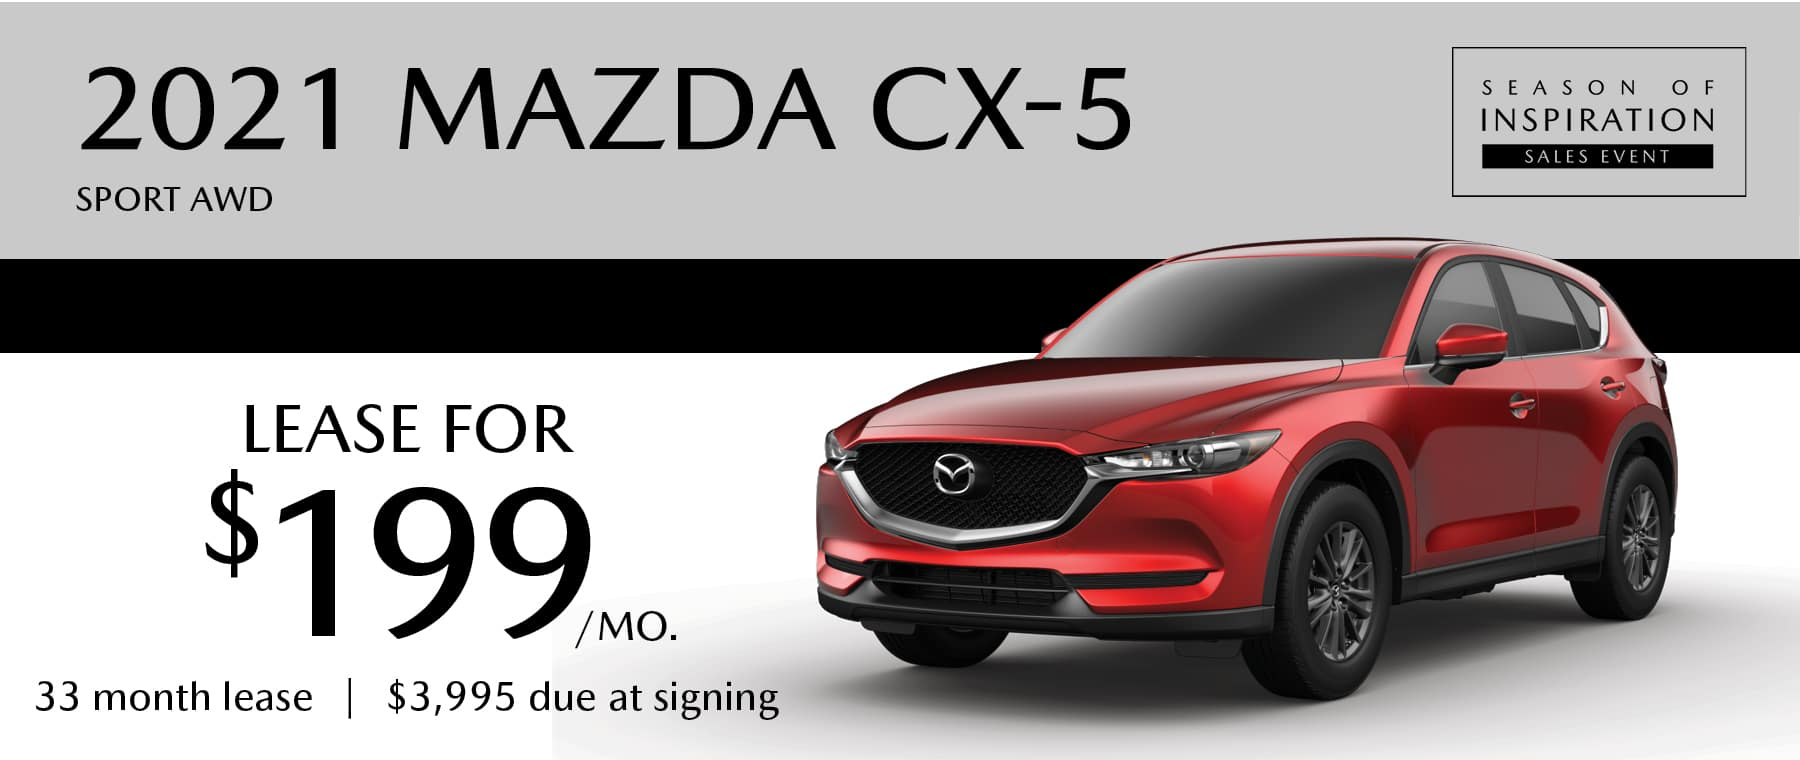 2021 MAZDA CX-5 Sport AWD lease for $199 per month with $3995 due at signing